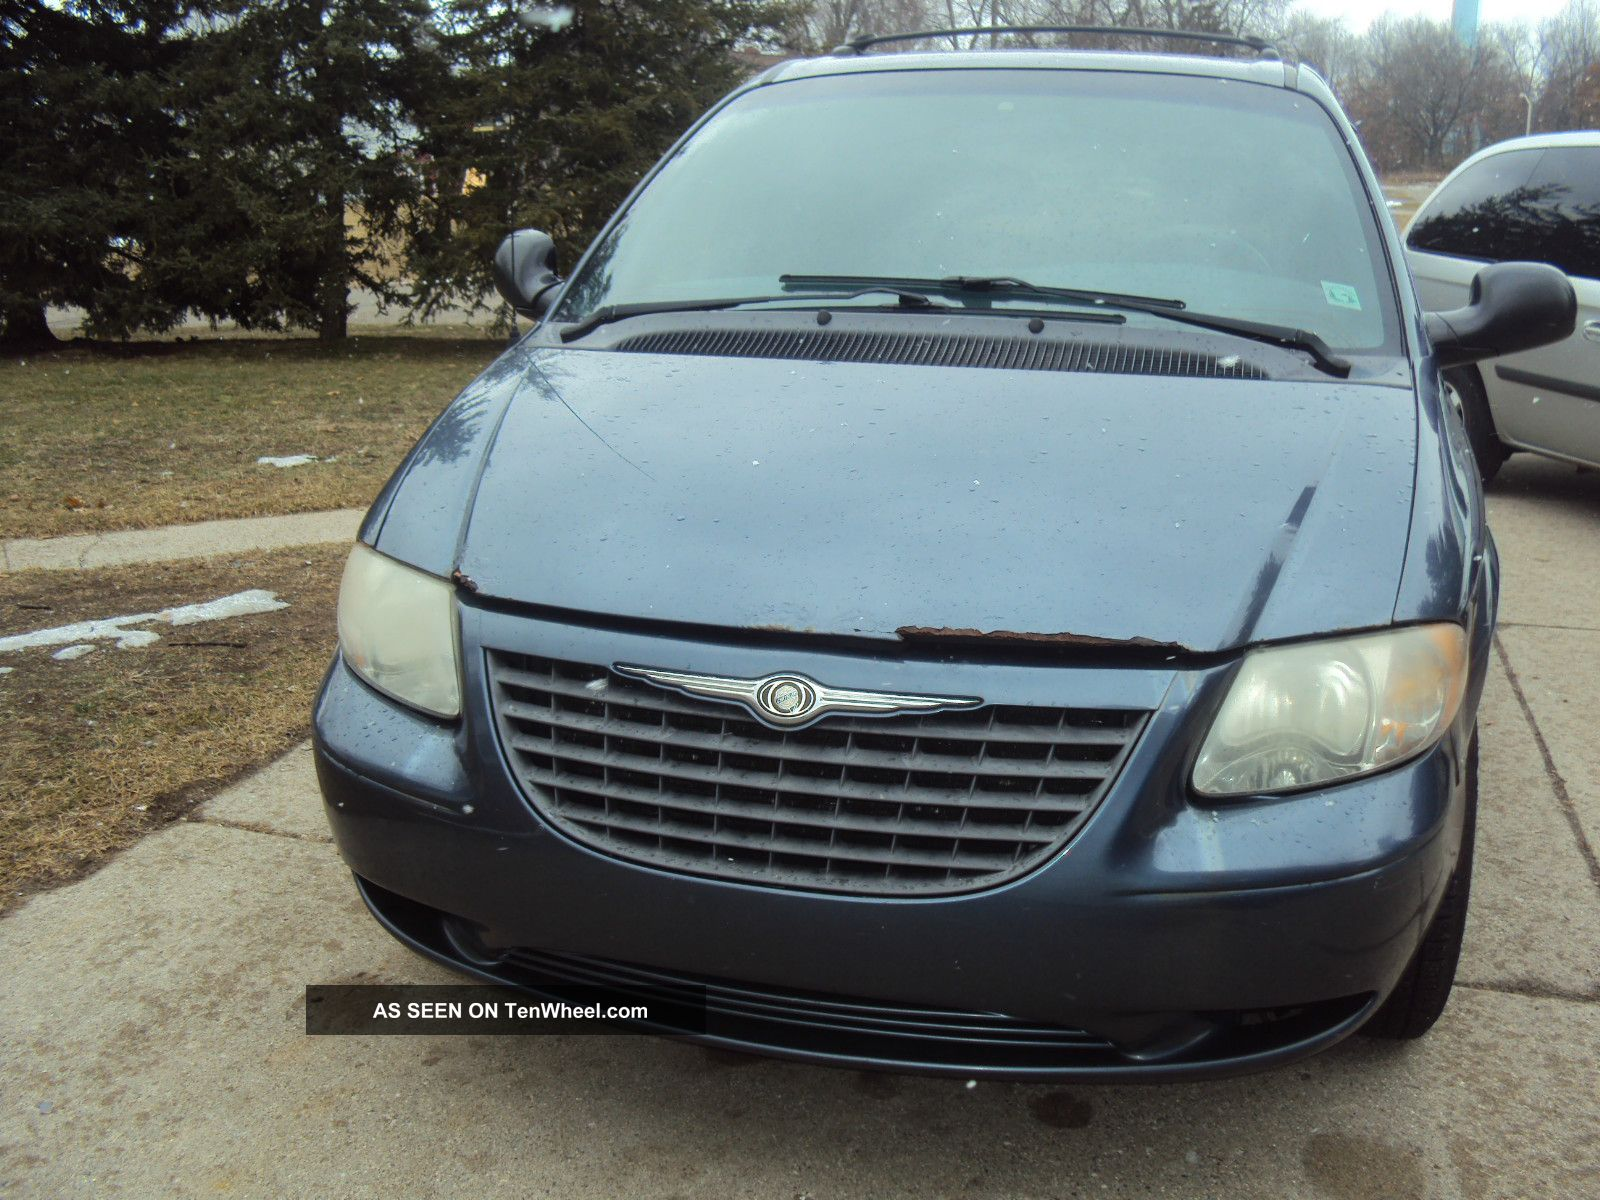 2001 chrysler voyager lx mini passenger van 4 door 3 3l town and country. Black Bedroom Furniture Sets. Home Design Ideas